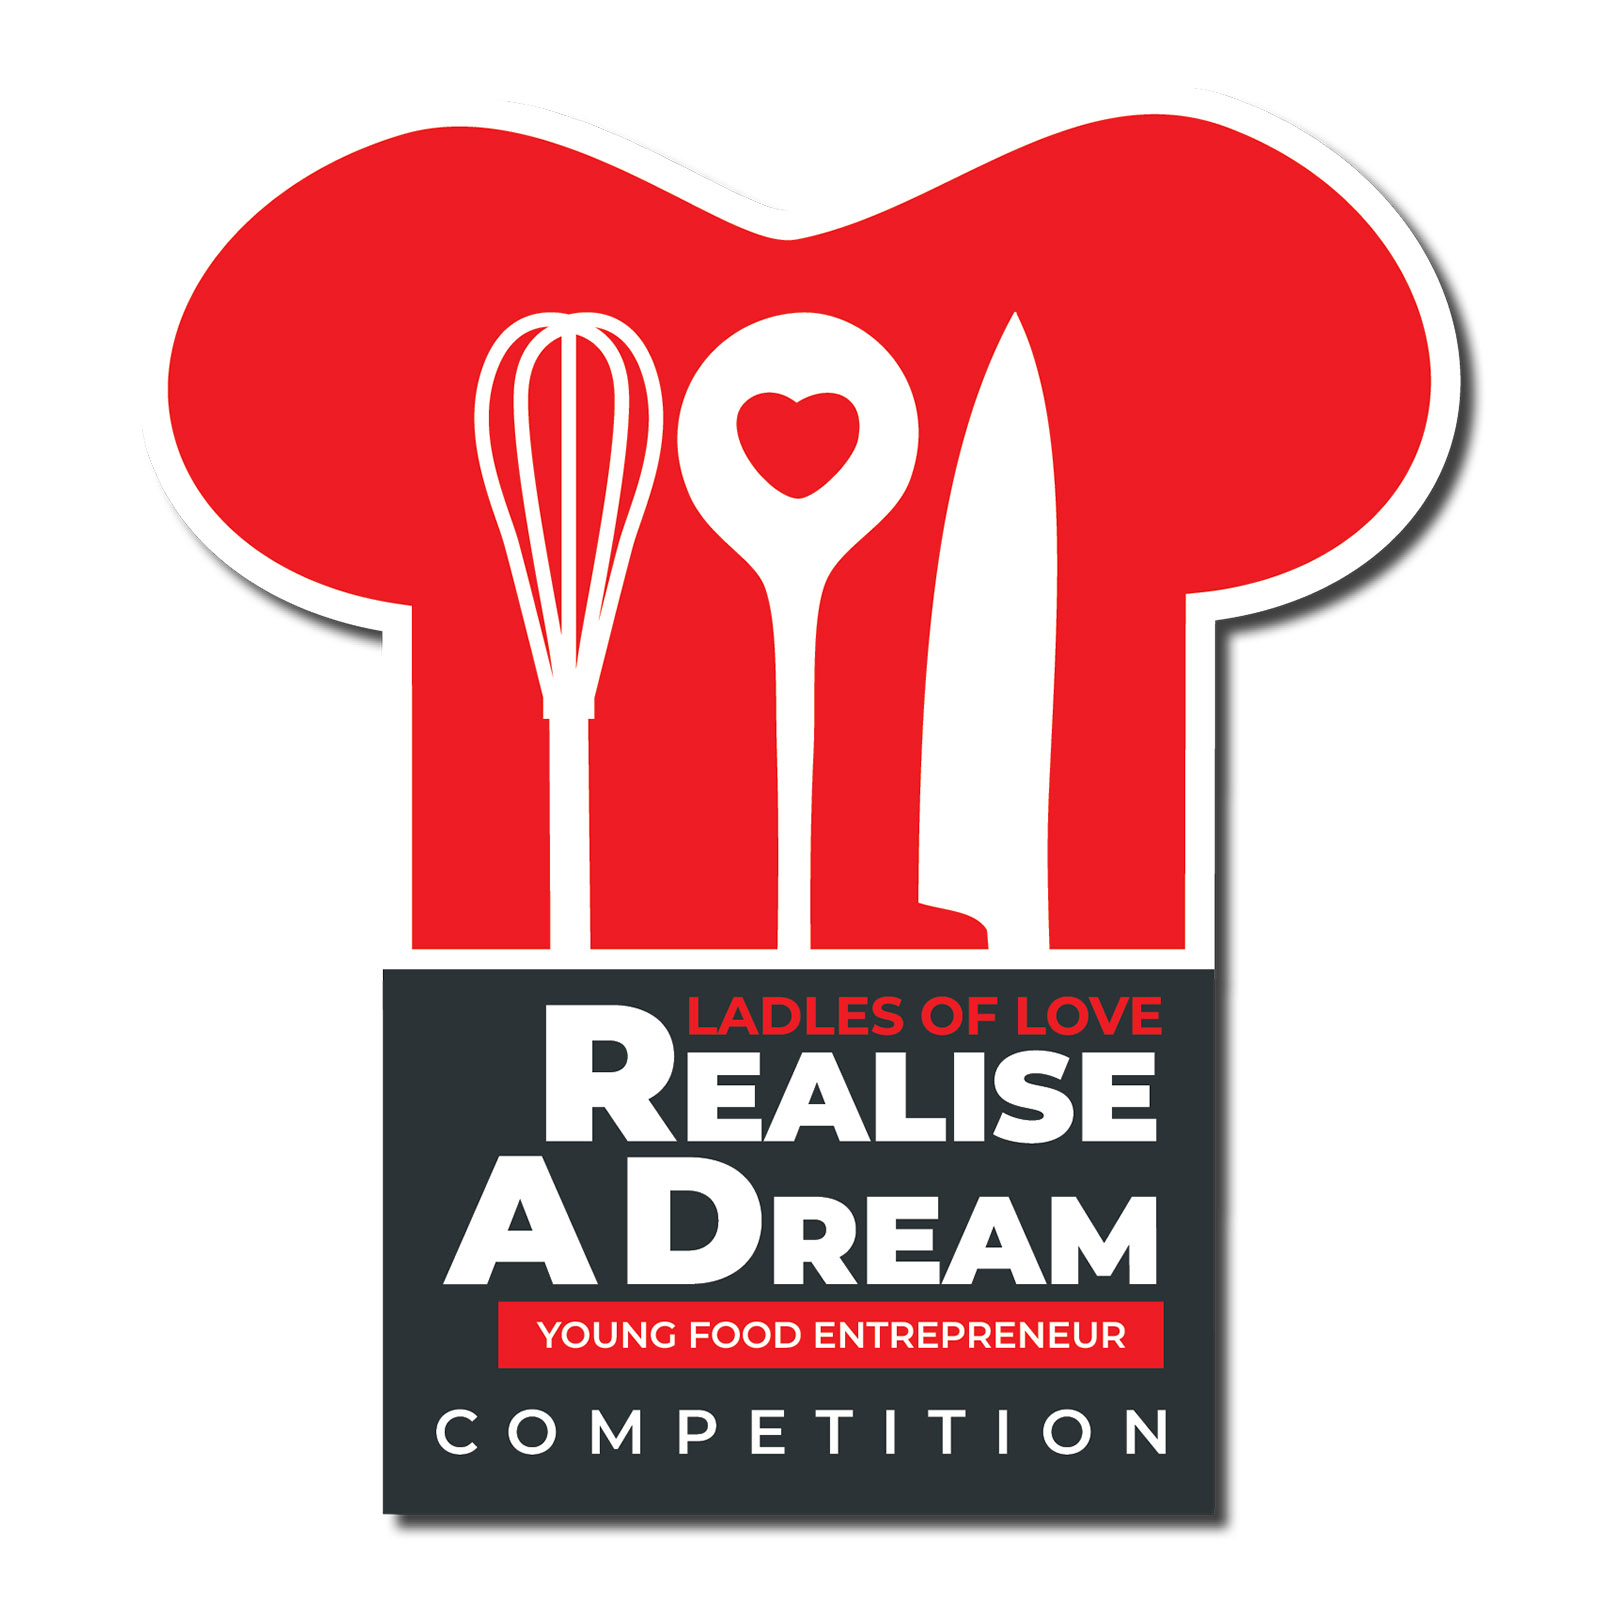 Chefs hat as a logo for the realise a dream competition to support local entrepreneurs in the food industry in cape town